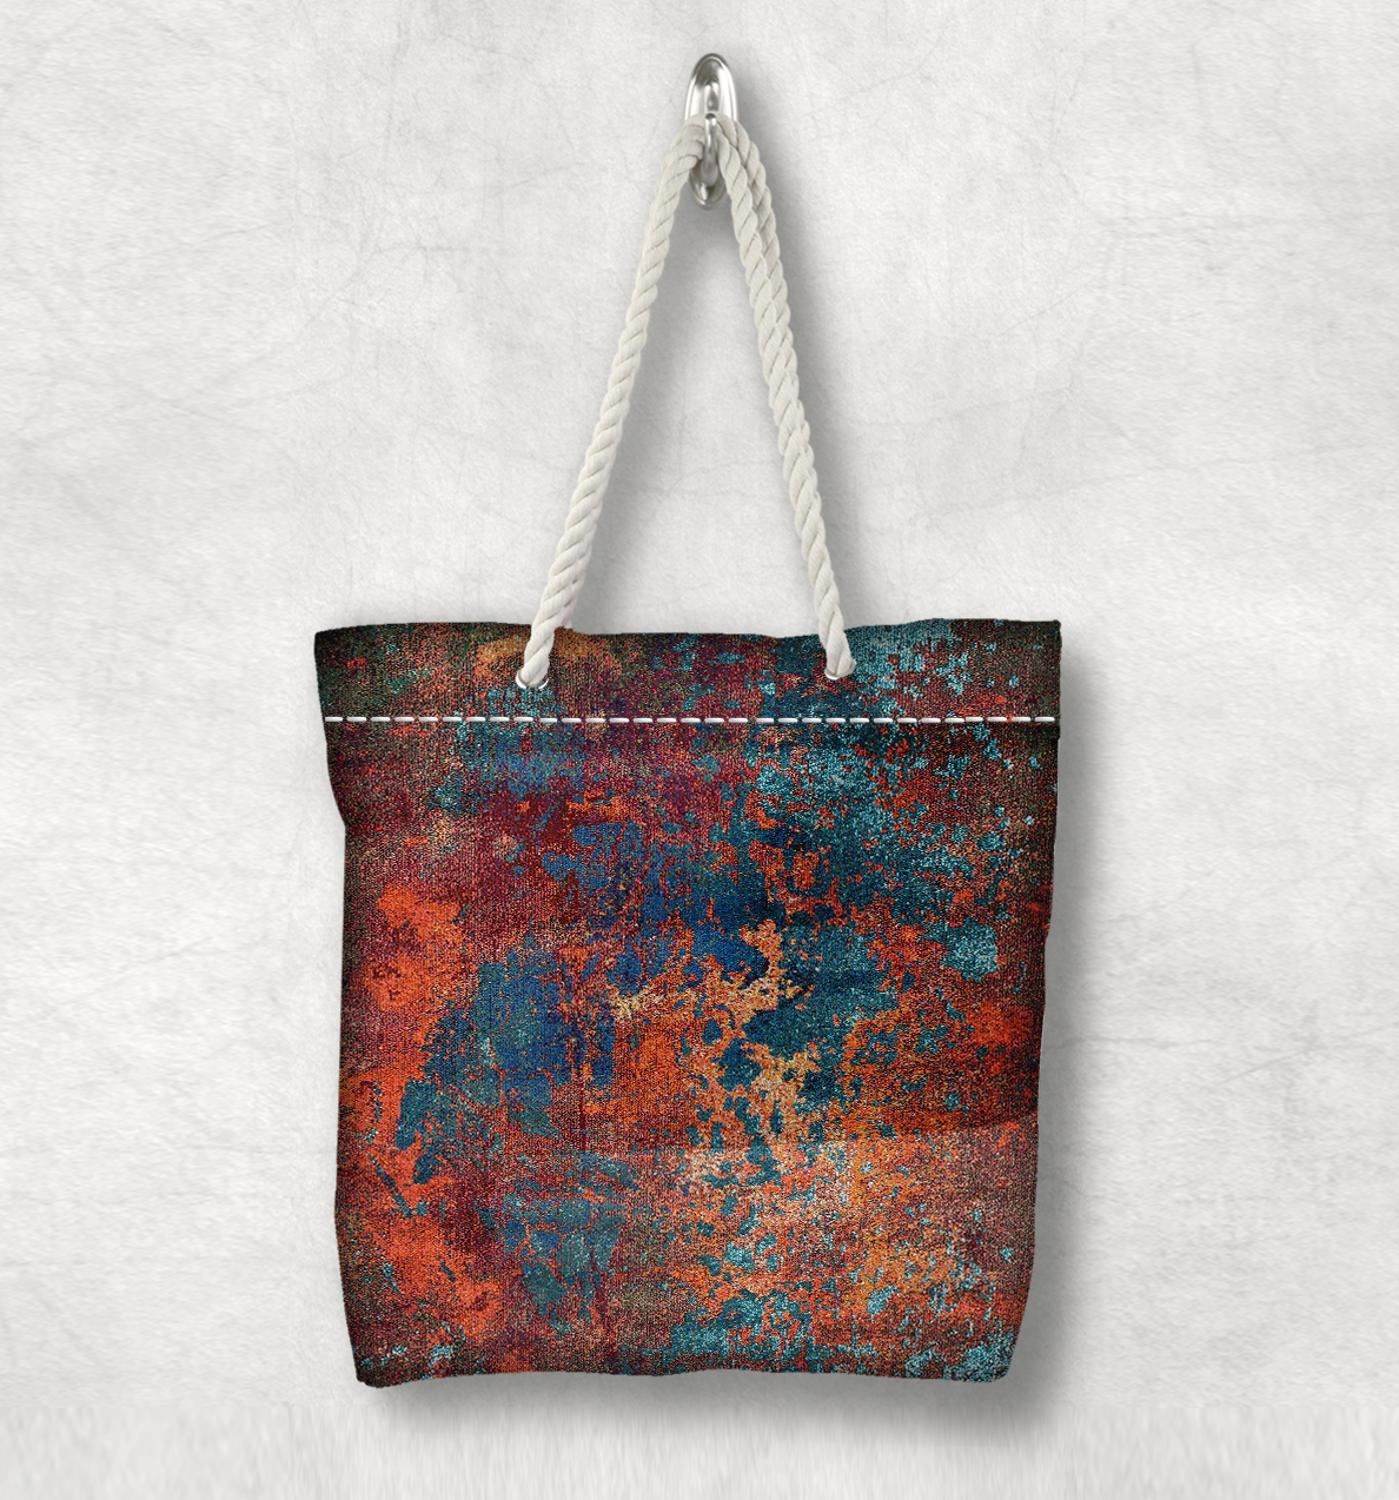 Else Orange Green Abstract Painting Anatolia Antique White Rope Handle Canvas Bag Cotton Canvas Zippered Tote Bag Shoulder Bag